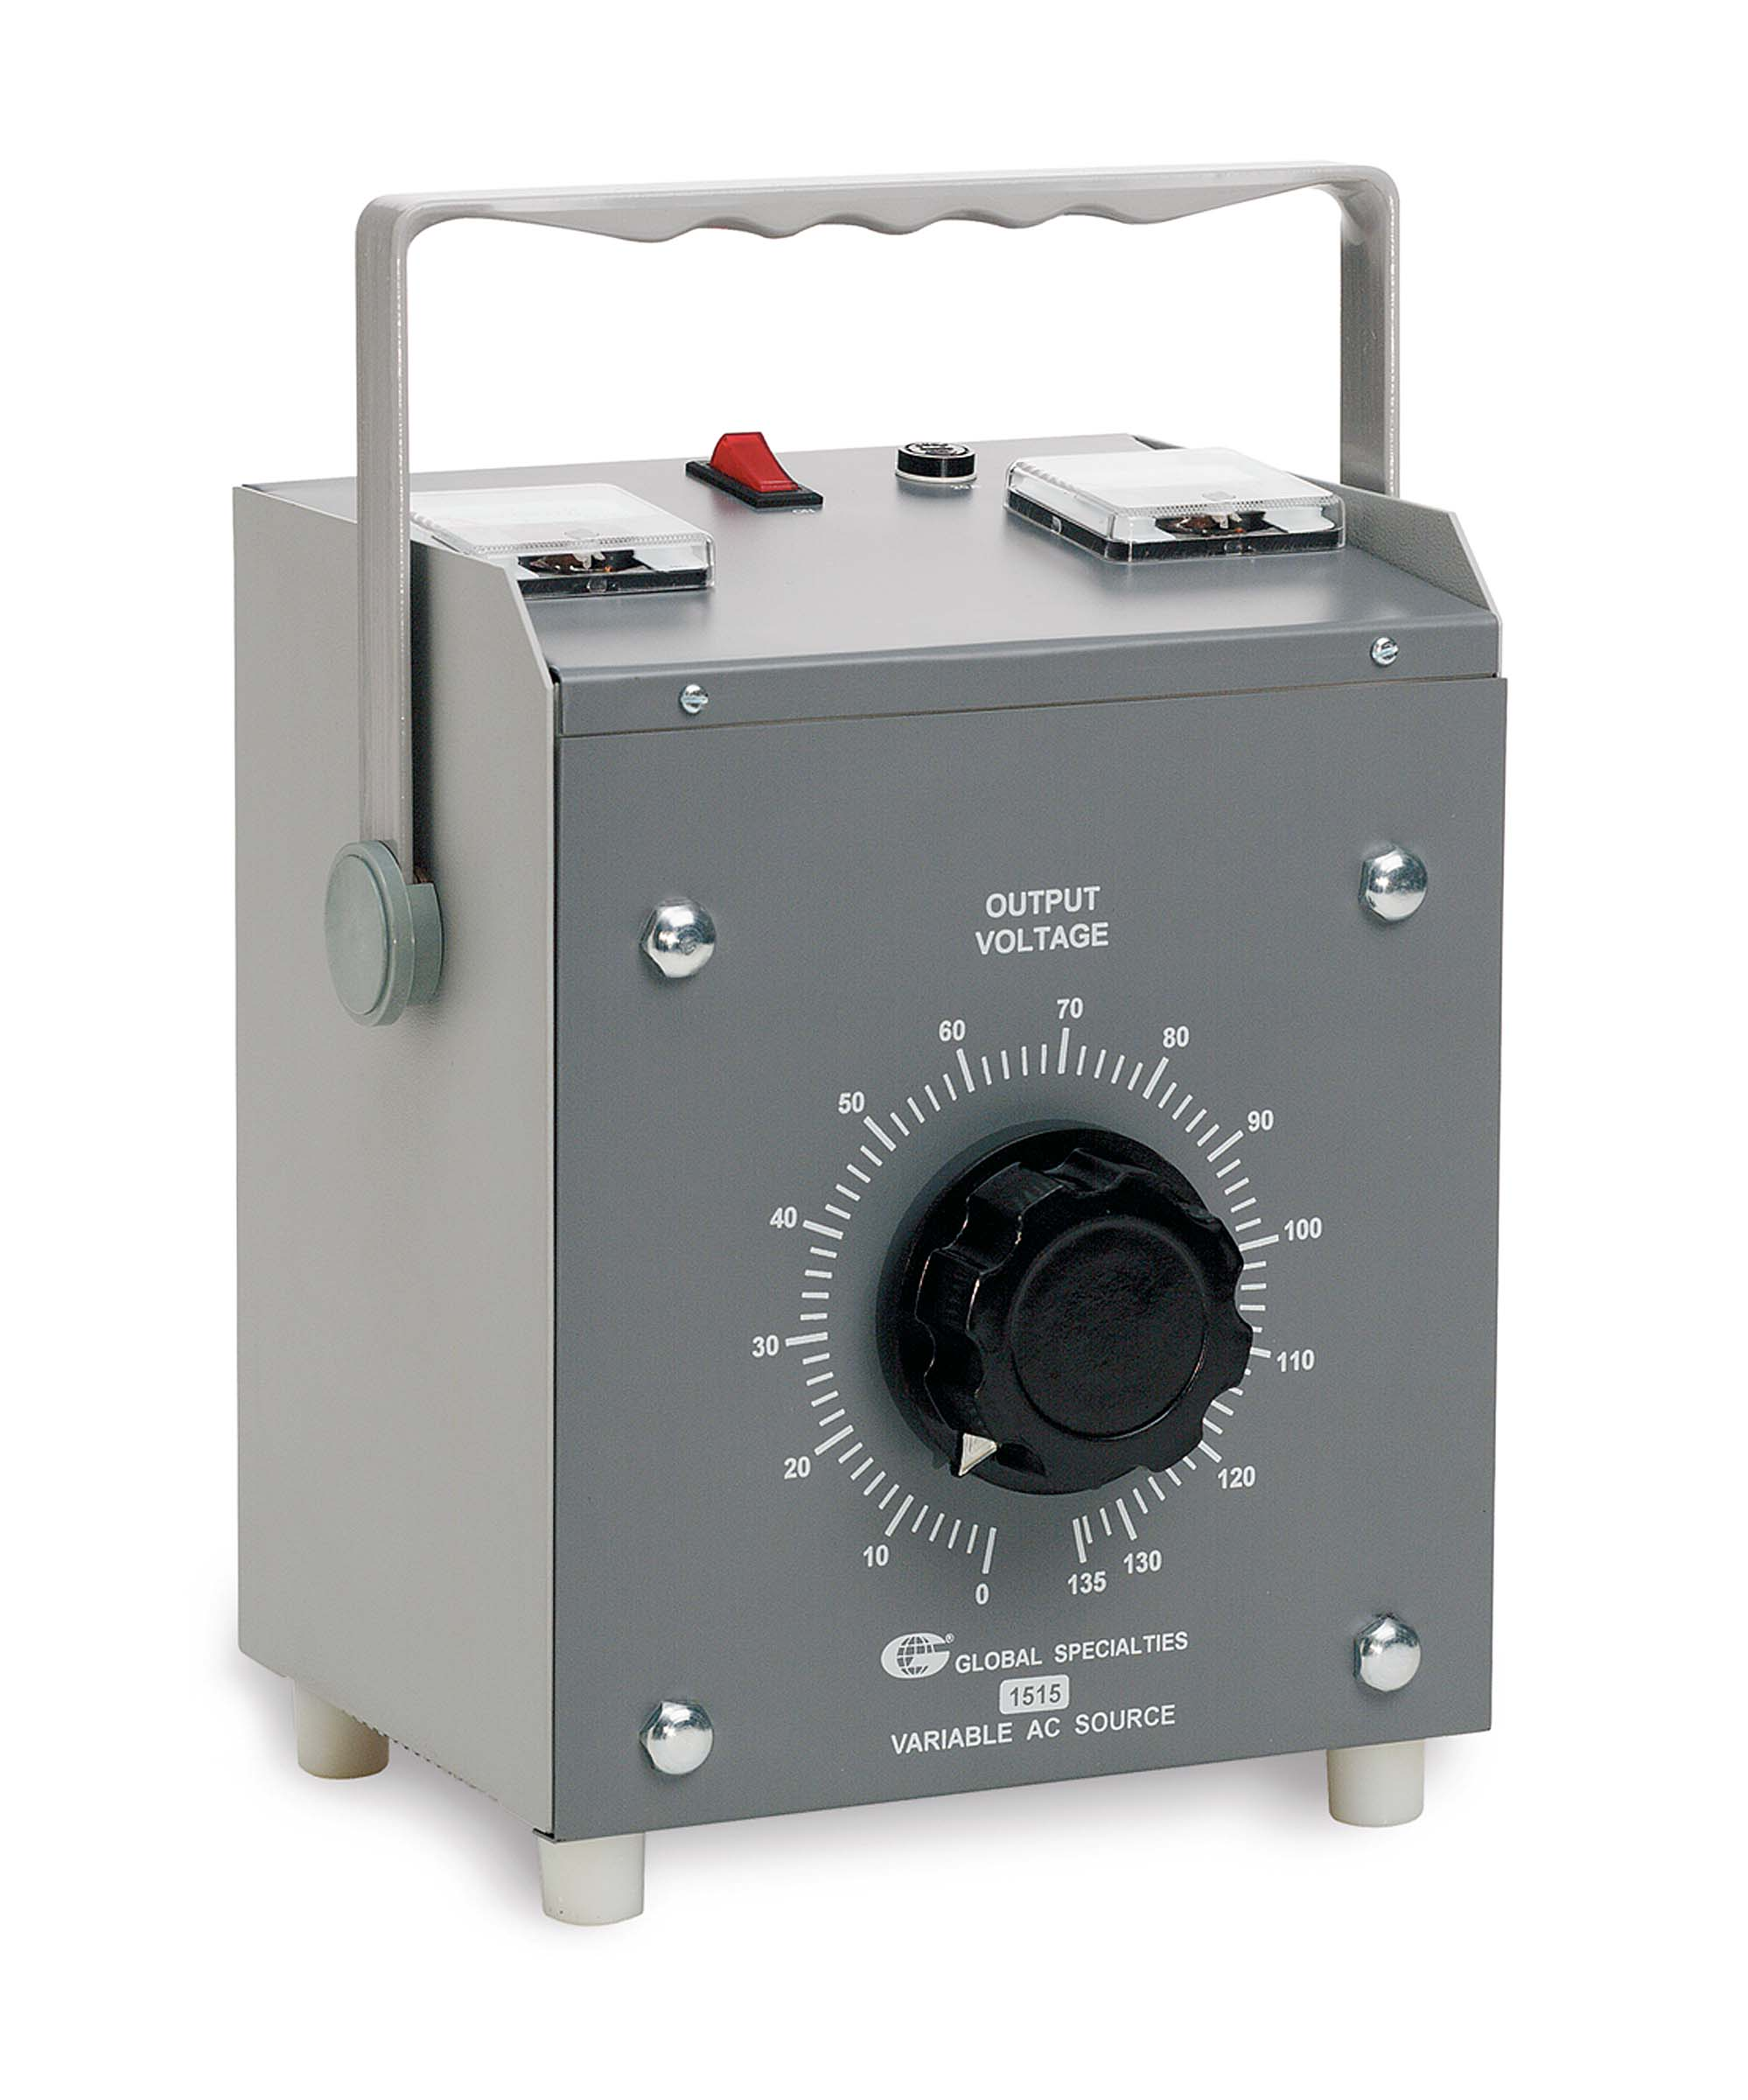 Click to preview image for the Global Specialties 1515 Variable AC Power Supply: 0-130V, 15A